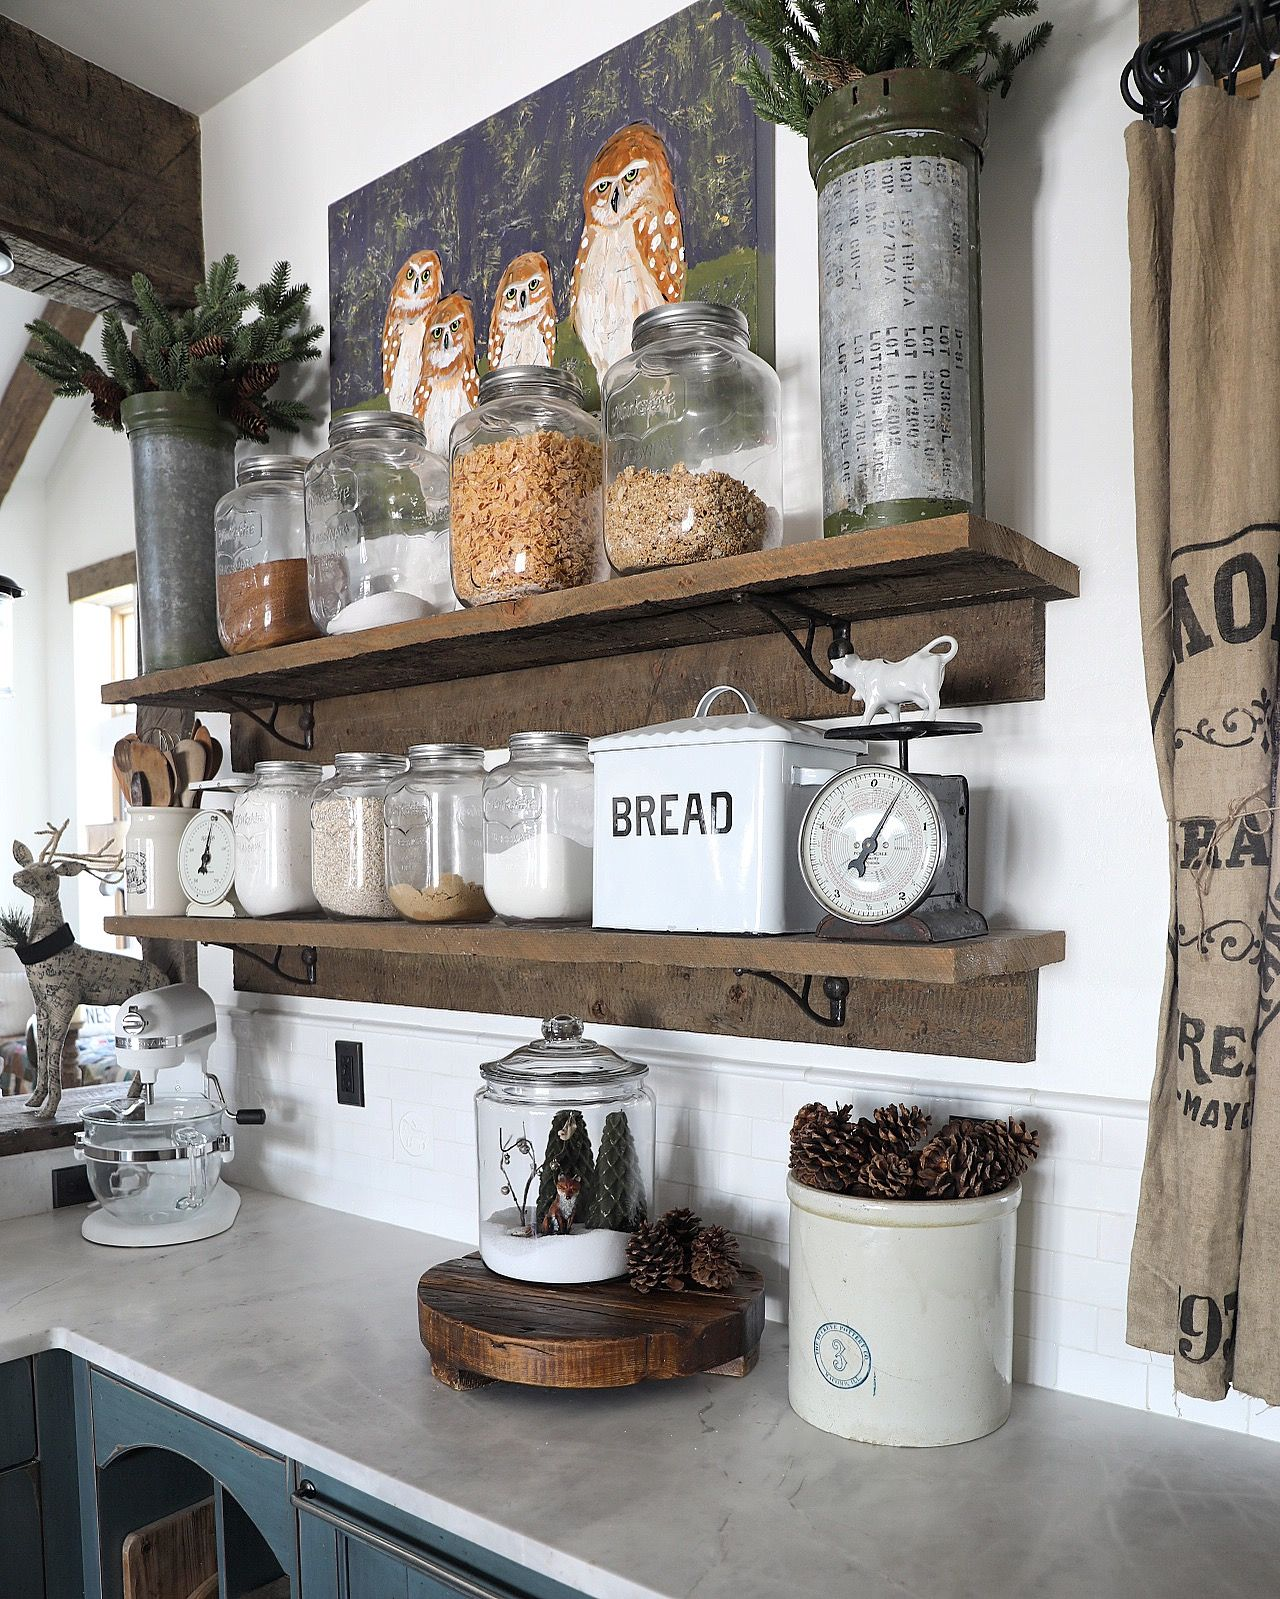 Pin By Catherine Pritzlaff On Re-Doing Home